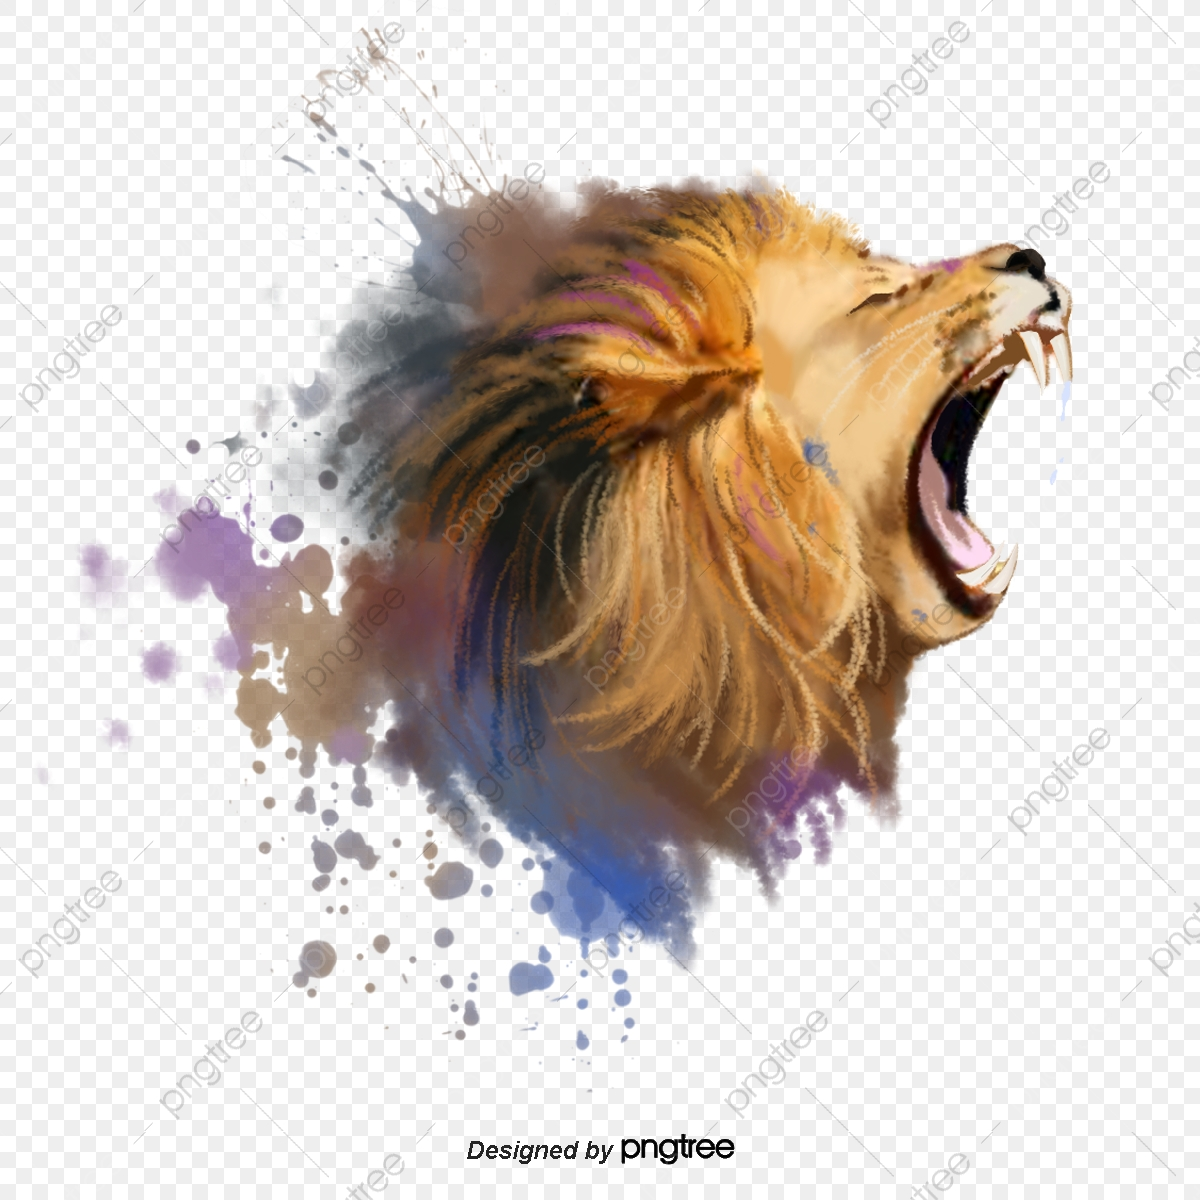 Lion Png Images Vector And Psd Files Free Download On Pngtree